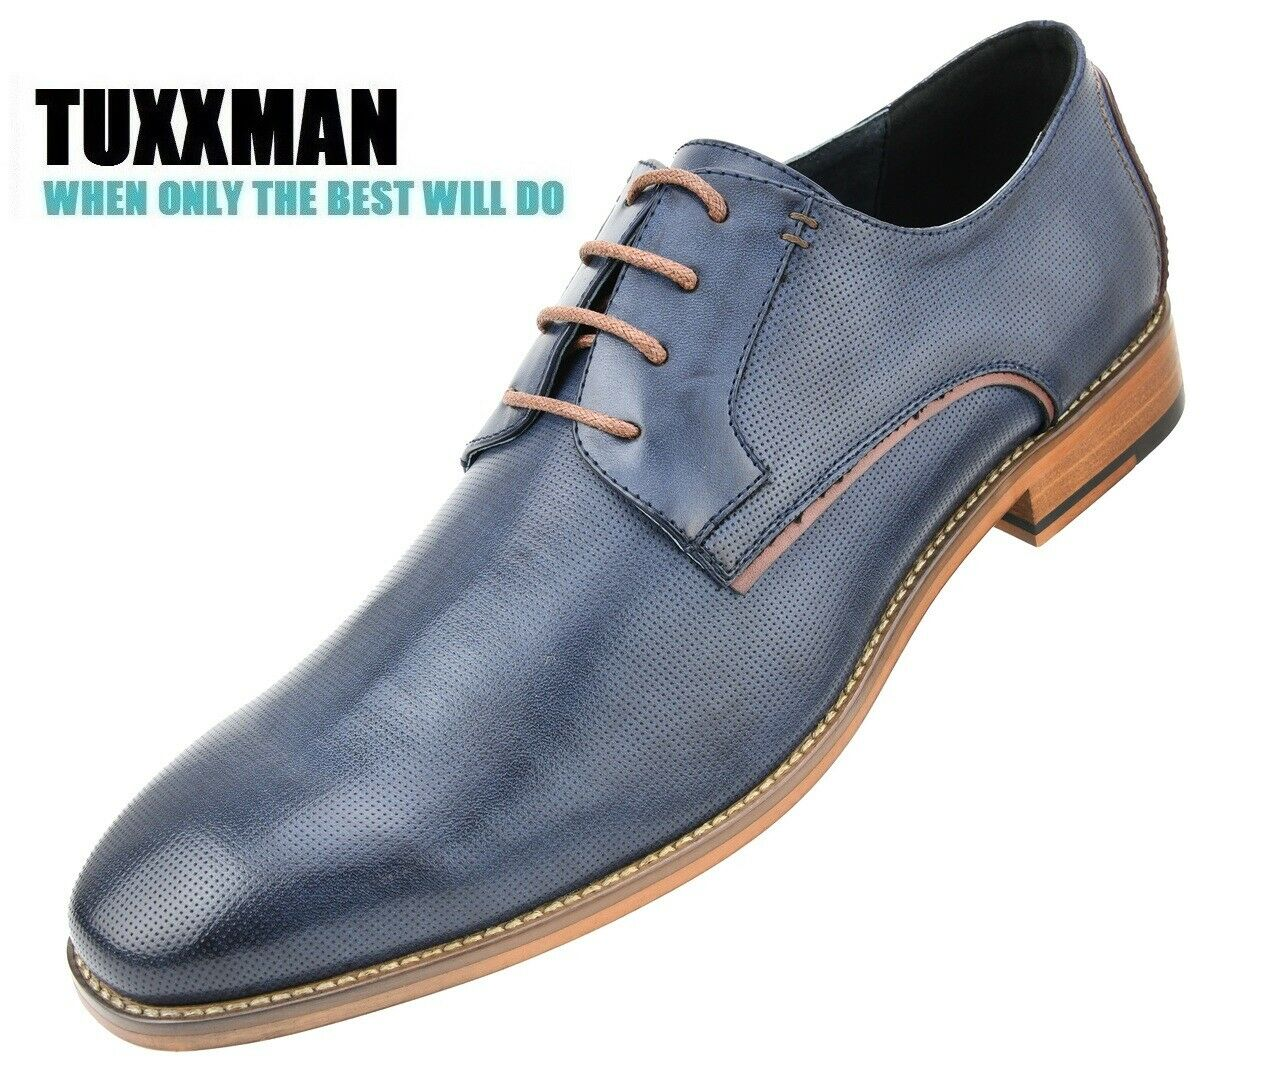 Men's Men's Contemporary Navy Blue Lace Up Plain Toe Oxford Dress Shoes TUXXMAN